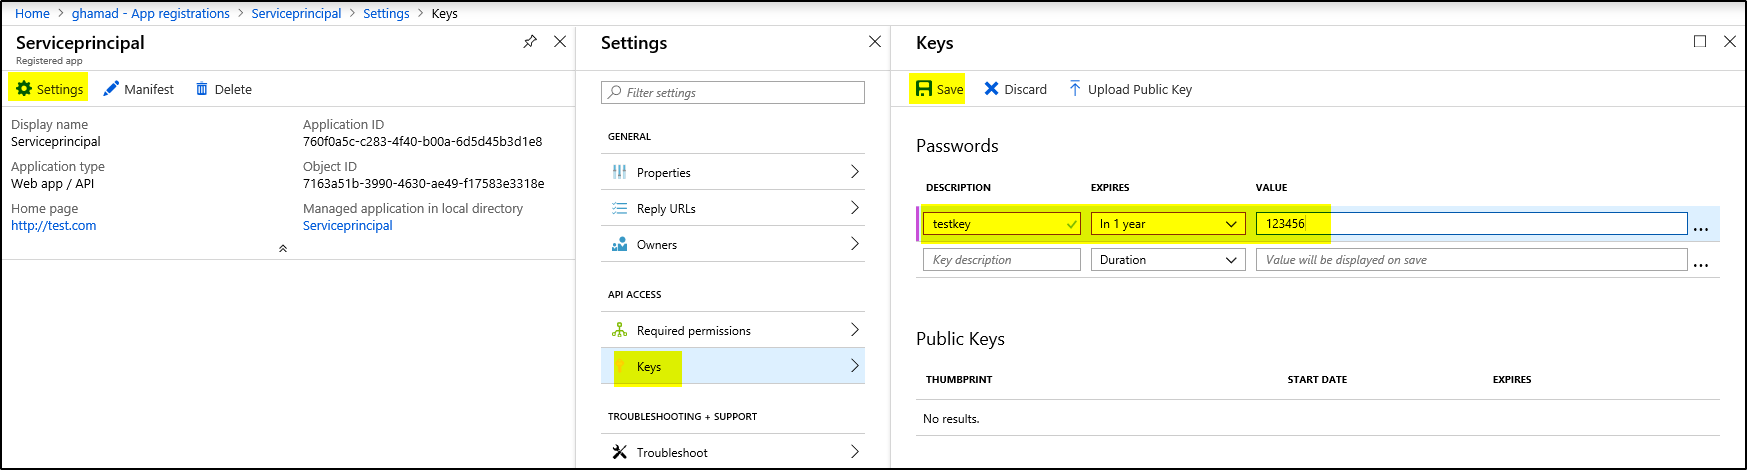 How to get access to the secrets saved in Azure Key Vault